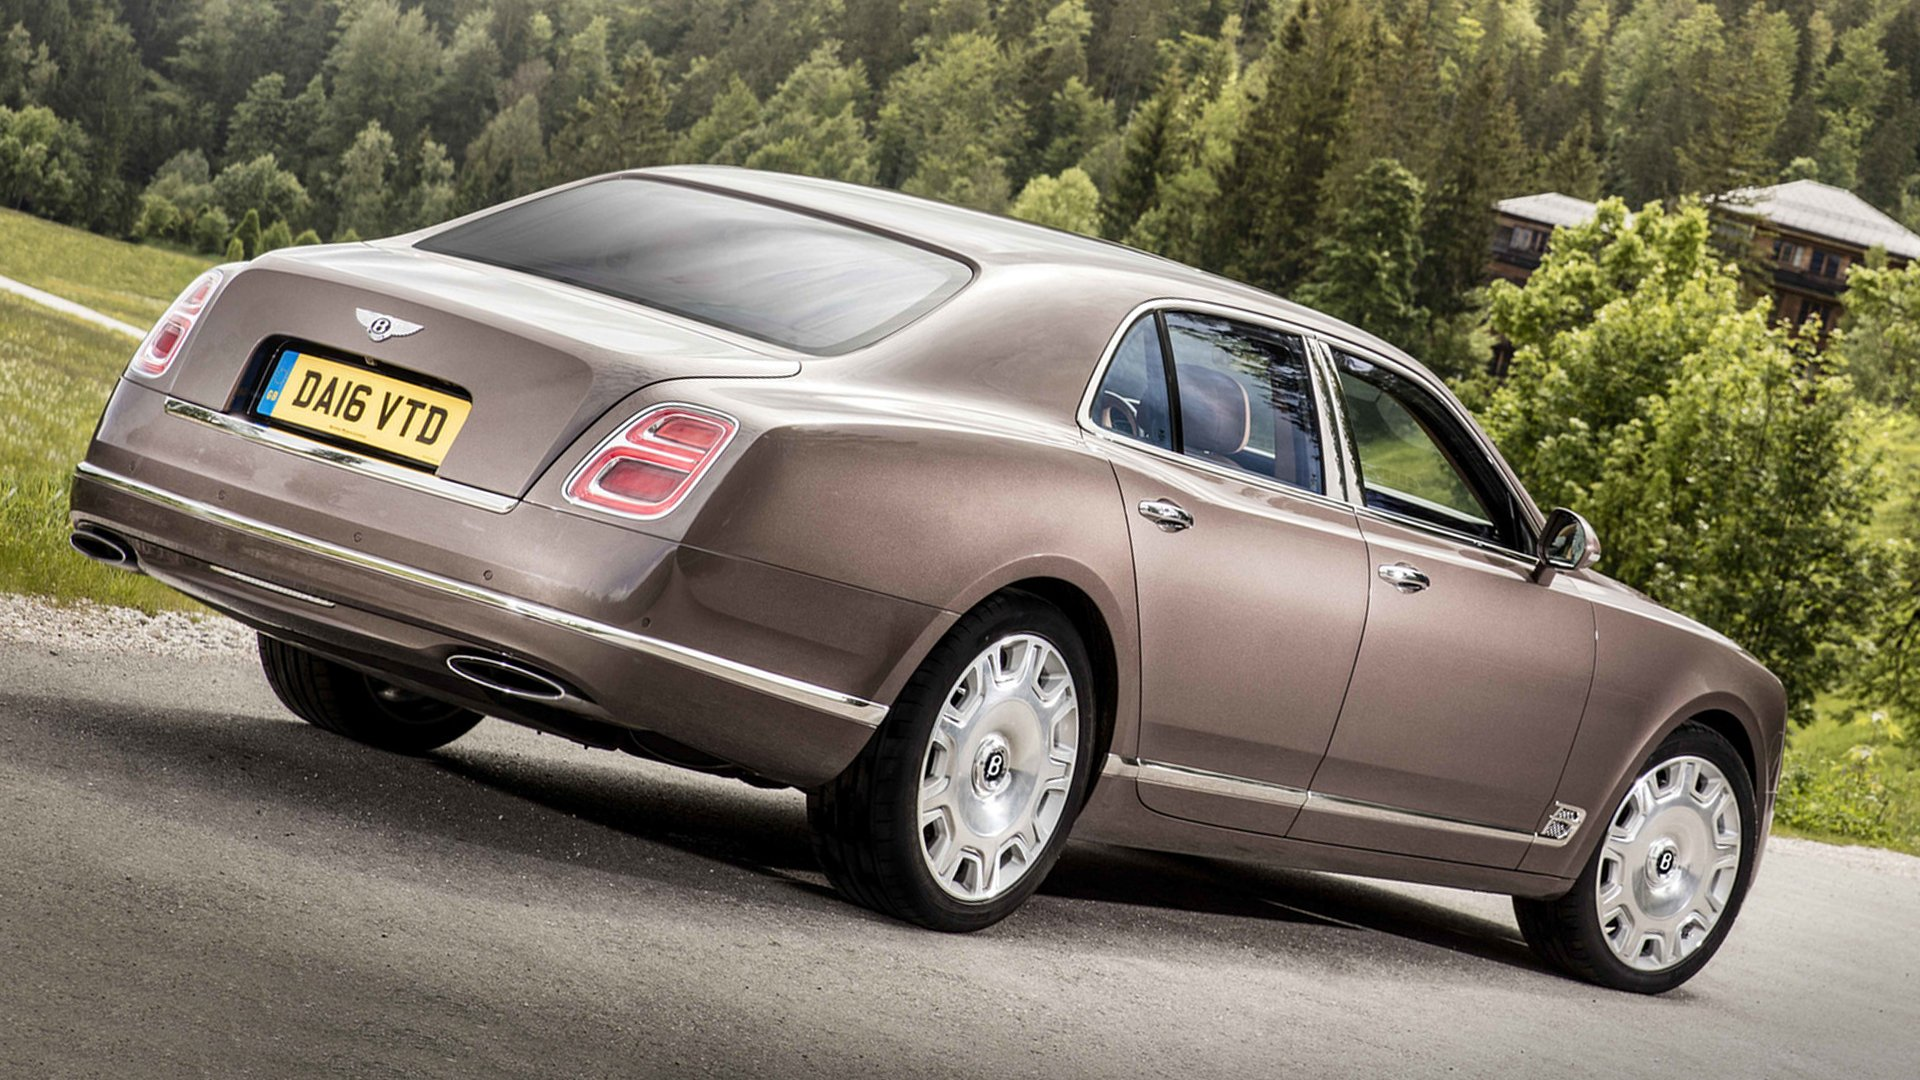 2018 Bentley Mulsanne Images Full HD